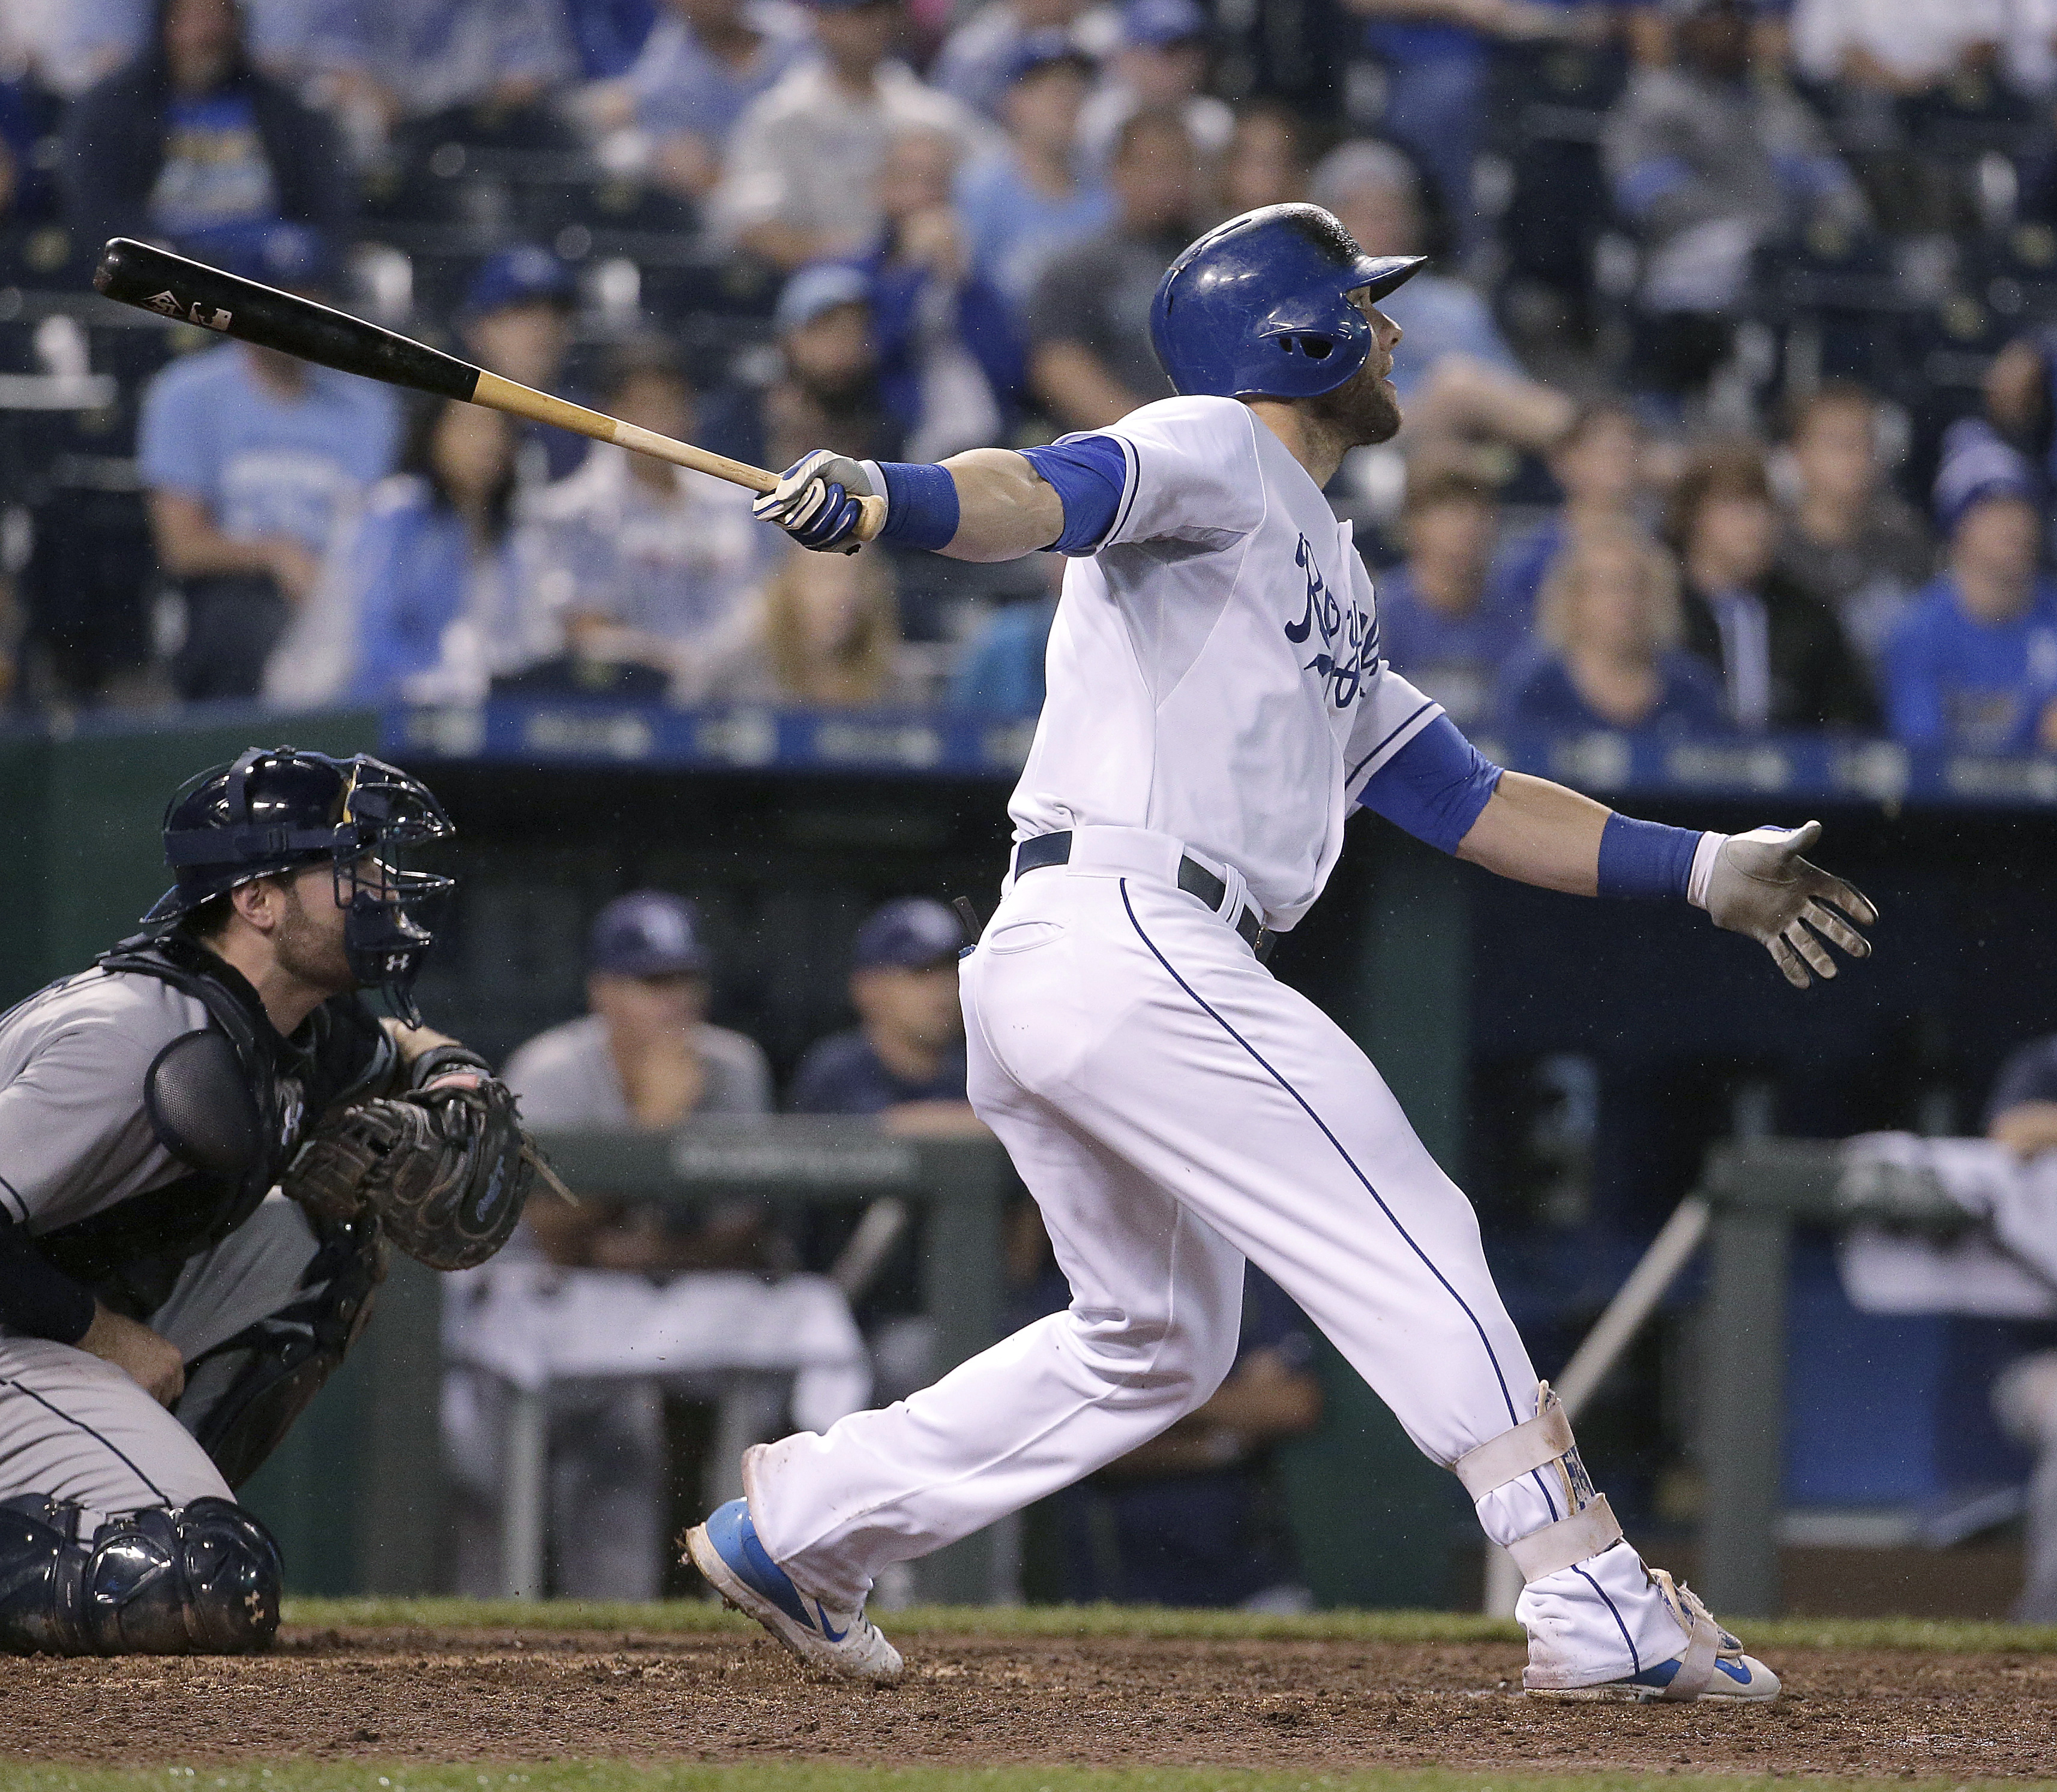 Kansas City Royals' Alex Gordon watches his two-run double during the eighth inning of the second game in a baseball doubleheader against the Tampa Bay Rays Tuesday, July 7, 2015, in Kansas City, Mo. (AP Photo/Charlie Riedel)